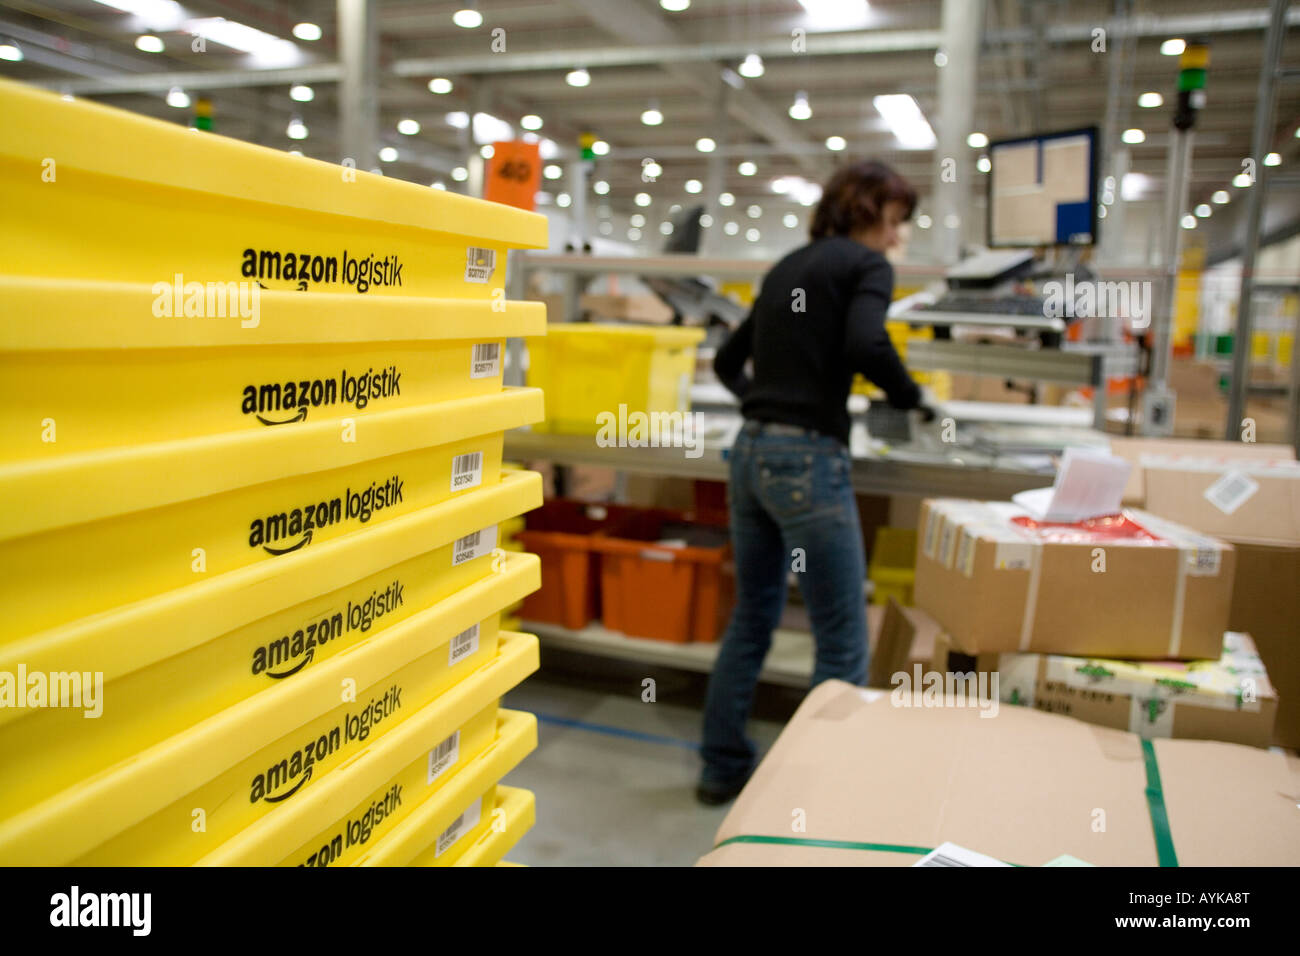 Amazon Online Shopping Stock Photos & Amazon Online Shopping Stock